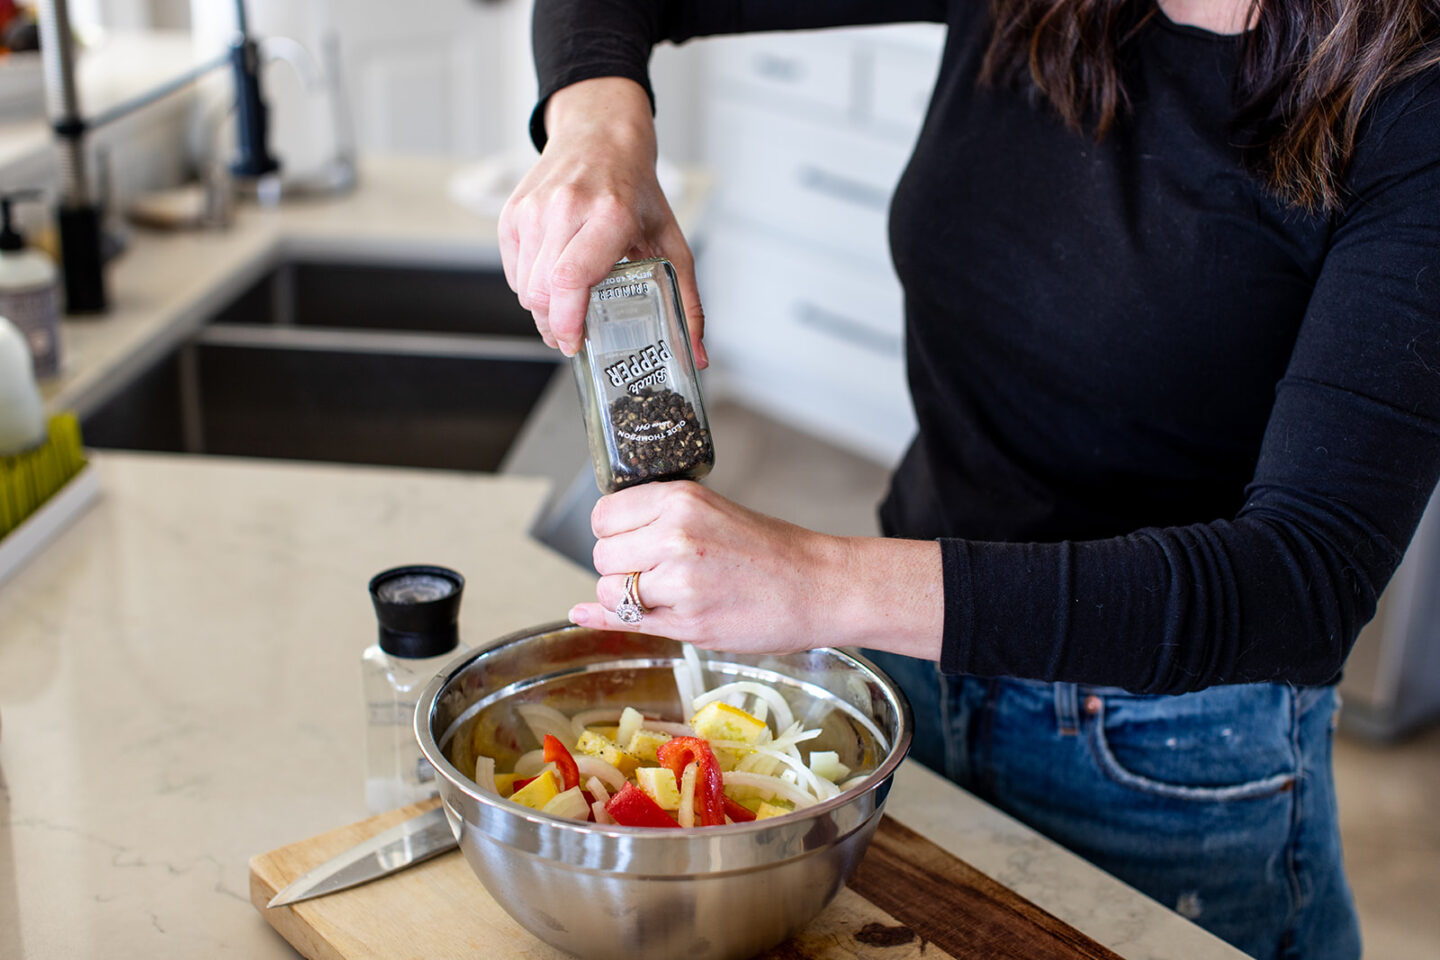 EASY Sheet Pan Roasted Vegetables Recipe featured by top Atlanta lifestyle blogger, Moderately High Maintenance |Pan Roasted Vegetables by popular Atlanta lifestyle blog, Moderately High Maintenance: image of a woman seasoning some chopped vegetables in a metal mixing bowl.